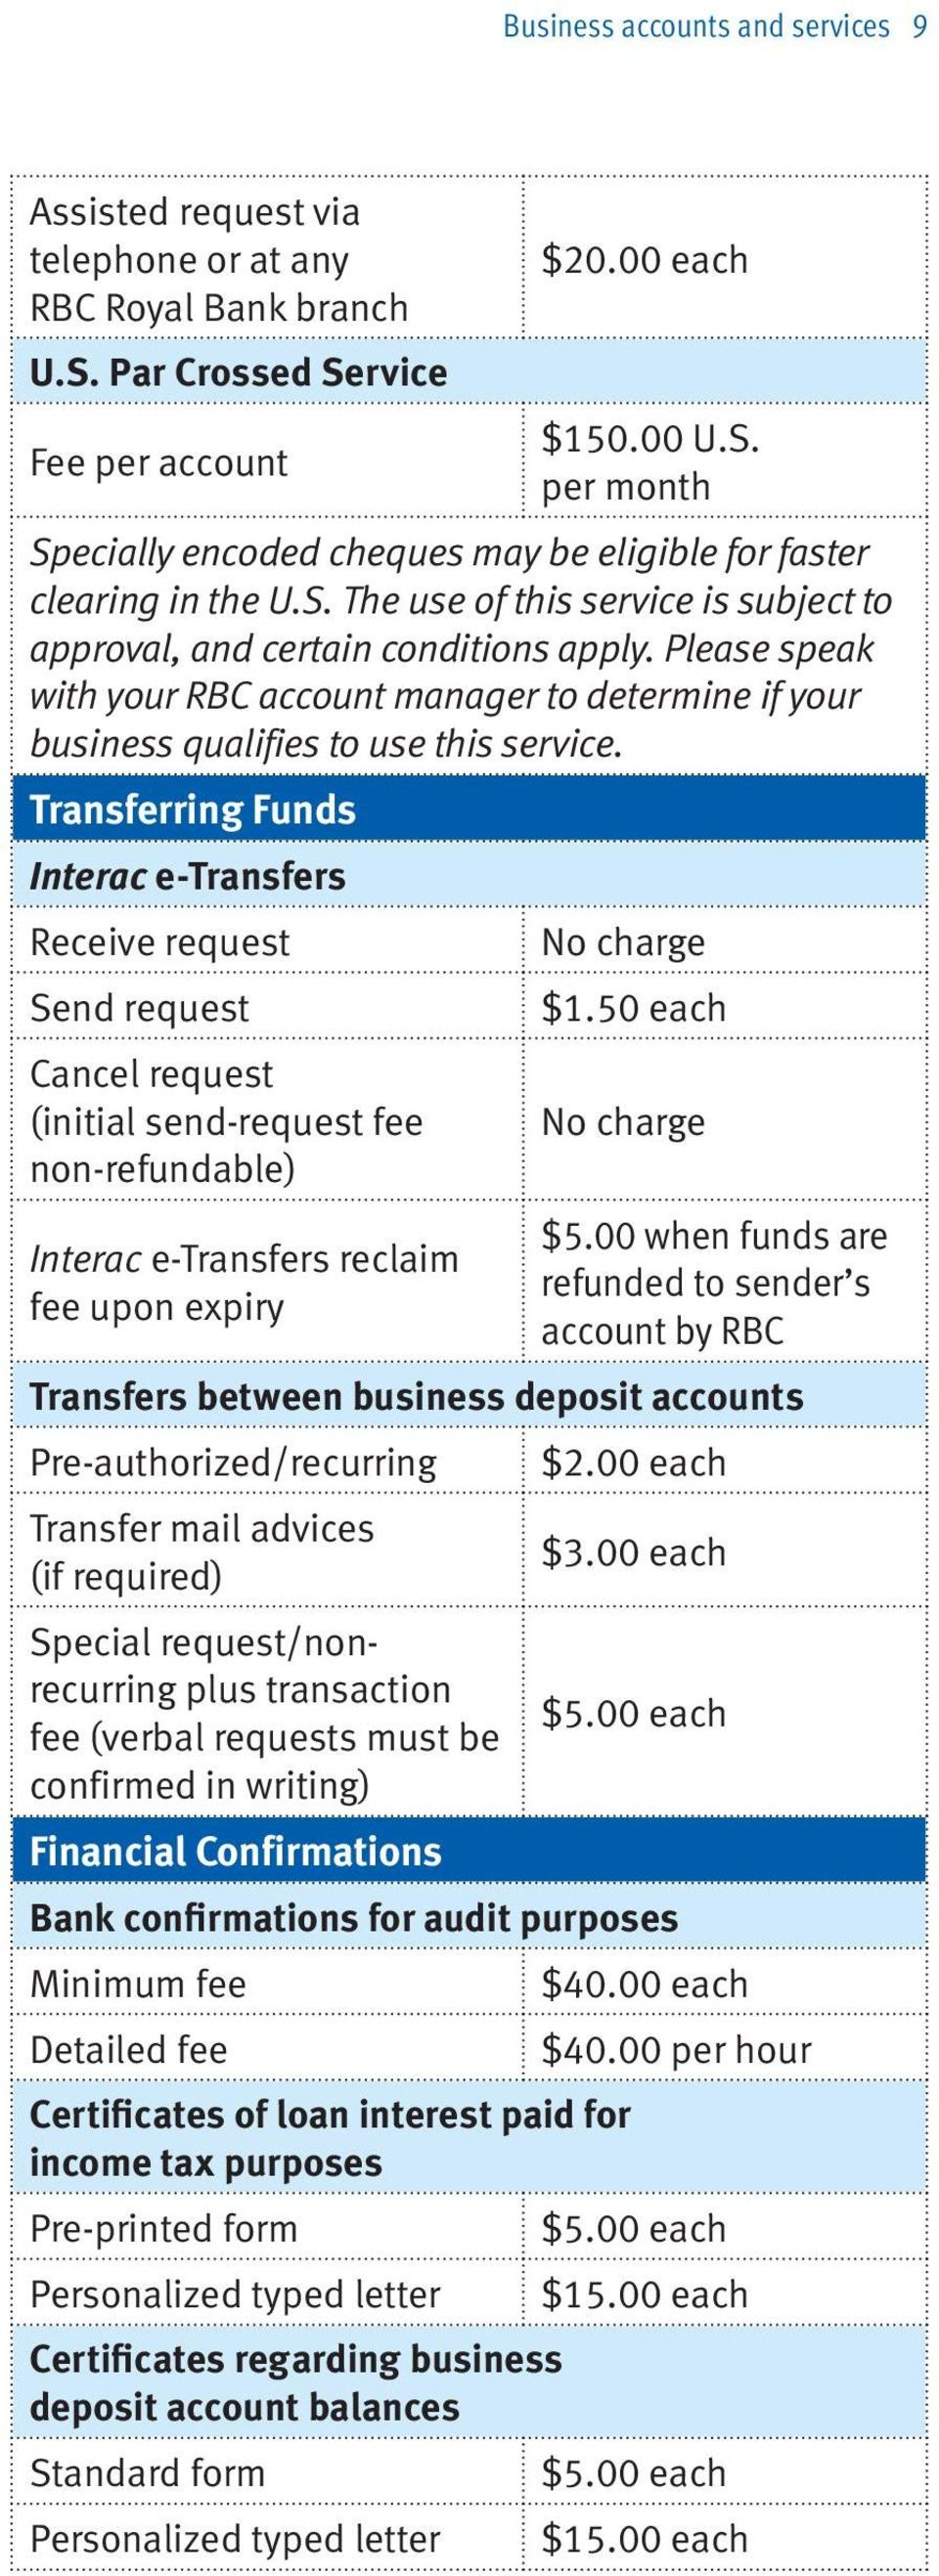 Please speak with your RBC account manager to determine if your business qualifies to use this service. Transferring Funds Interac e-transfers Receive request No charge Send request $1.